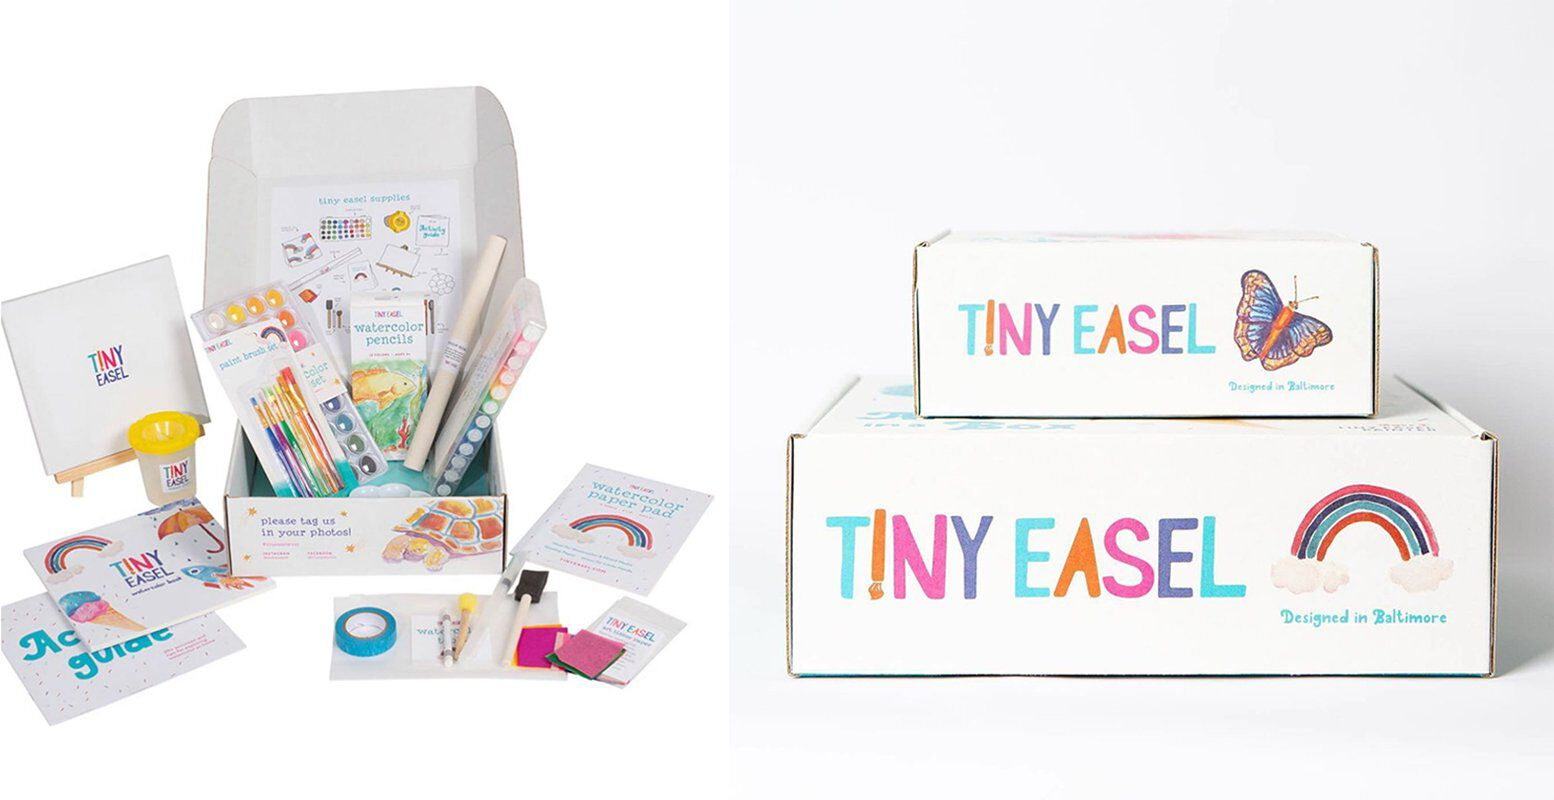 Tiny Easel custom boxes, kit contents, watercolor art supplies